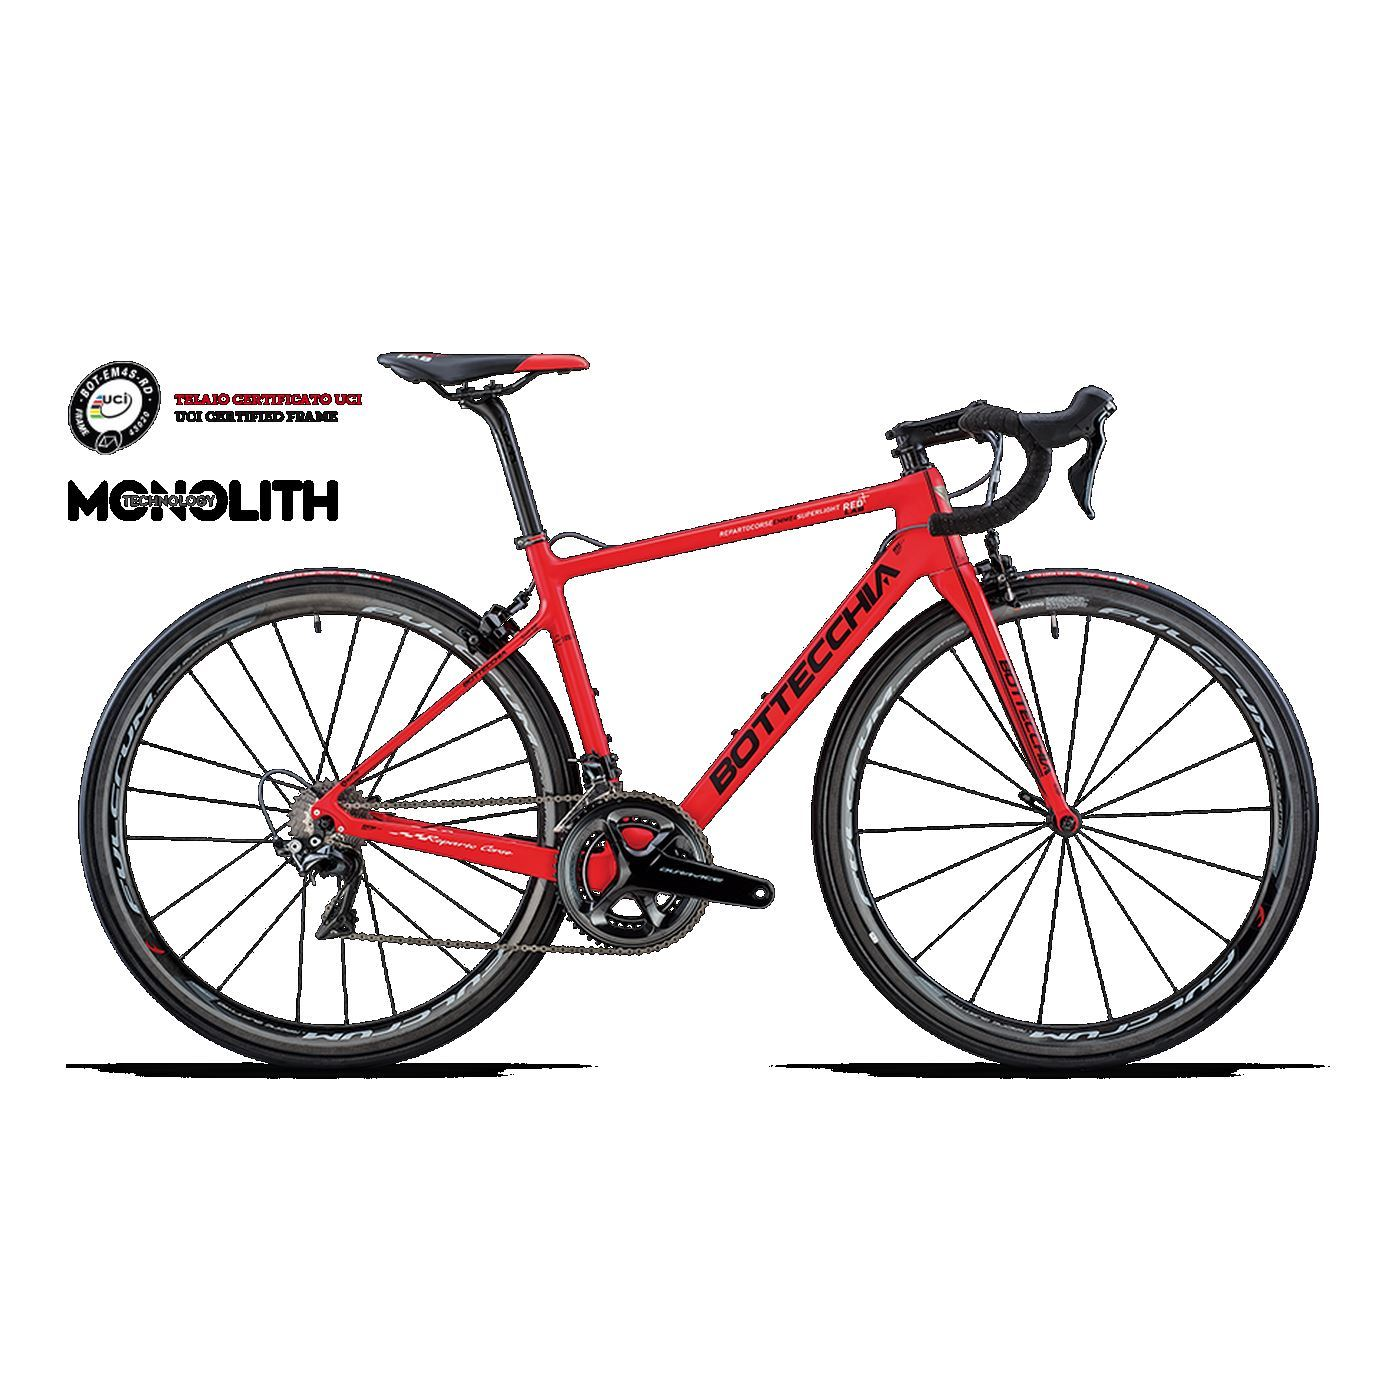 CESTNO KOLO BOTTECCHIA 73Q EMME4 SUPERLIGHT 2020